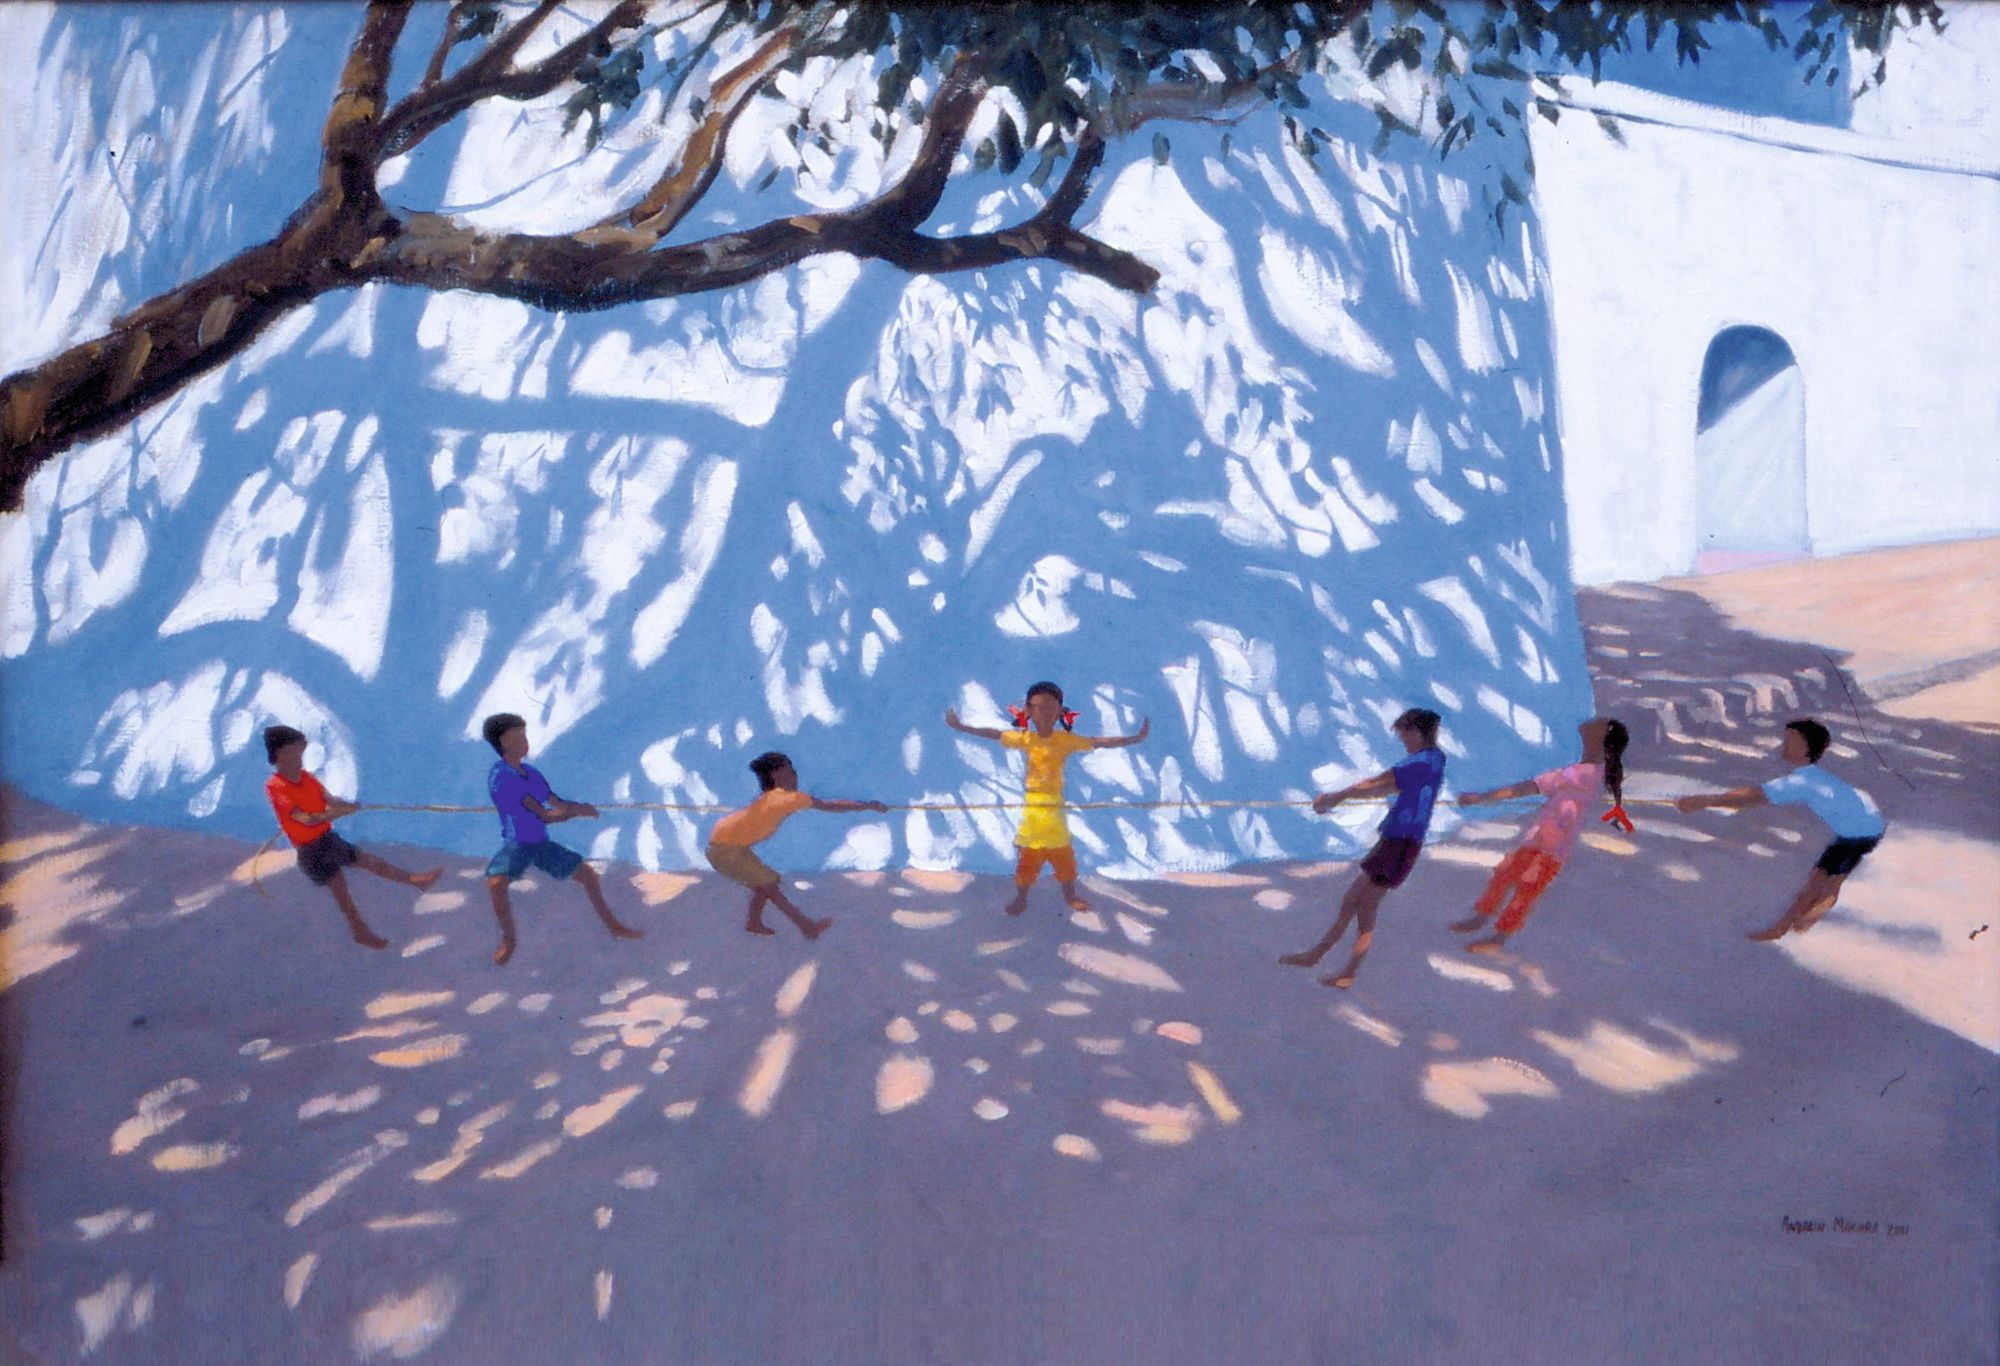 Andrew Macara, Tug of War, Gujarat, India, 2001